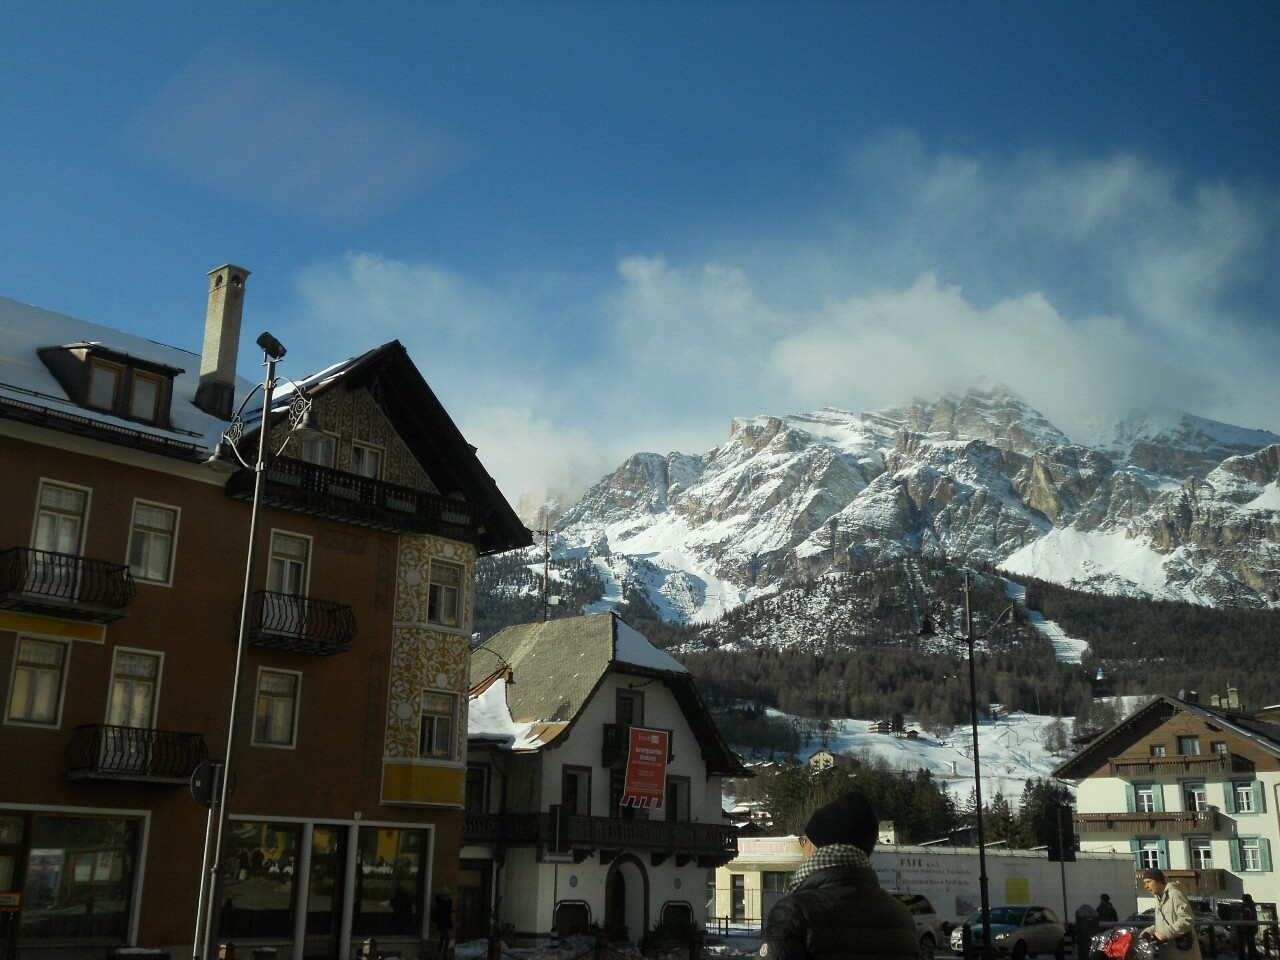 resently I went to cortina for work … if you don't know of it  , it is an amazing rather expencive ski resort in italy… I spent every moment I had free in a coffee shop in hope that I could speak to him